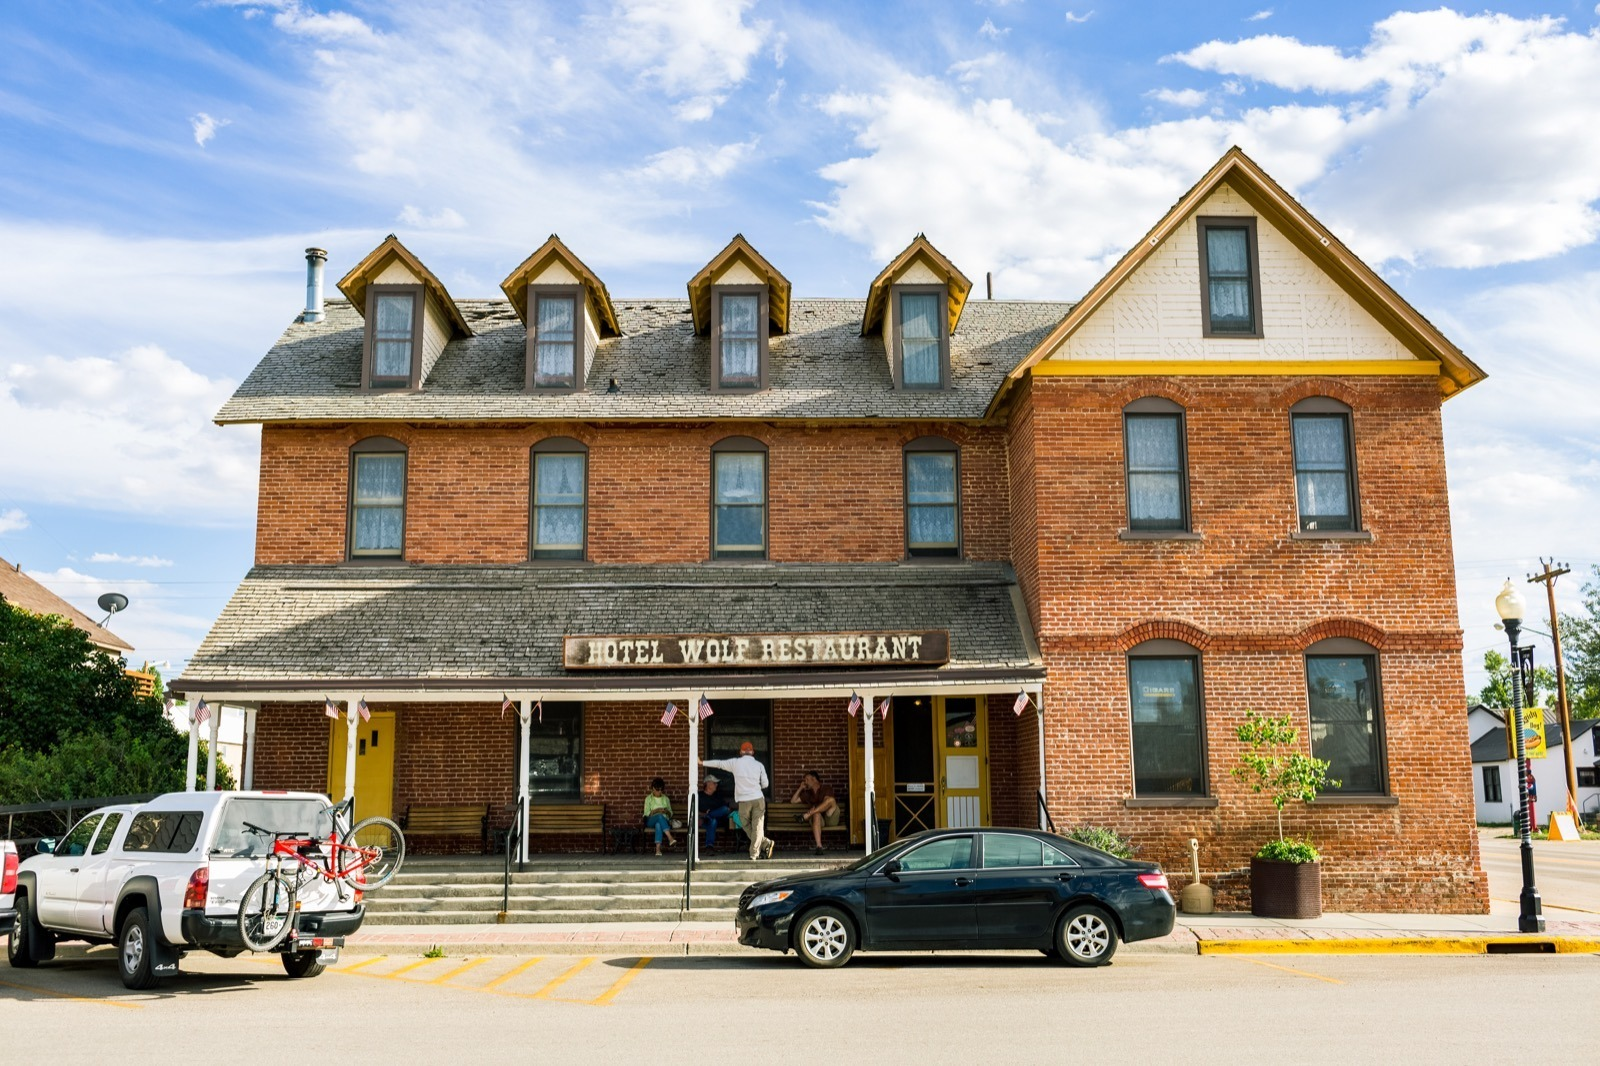 Hotel Wolf in Saratoga, Carbon County